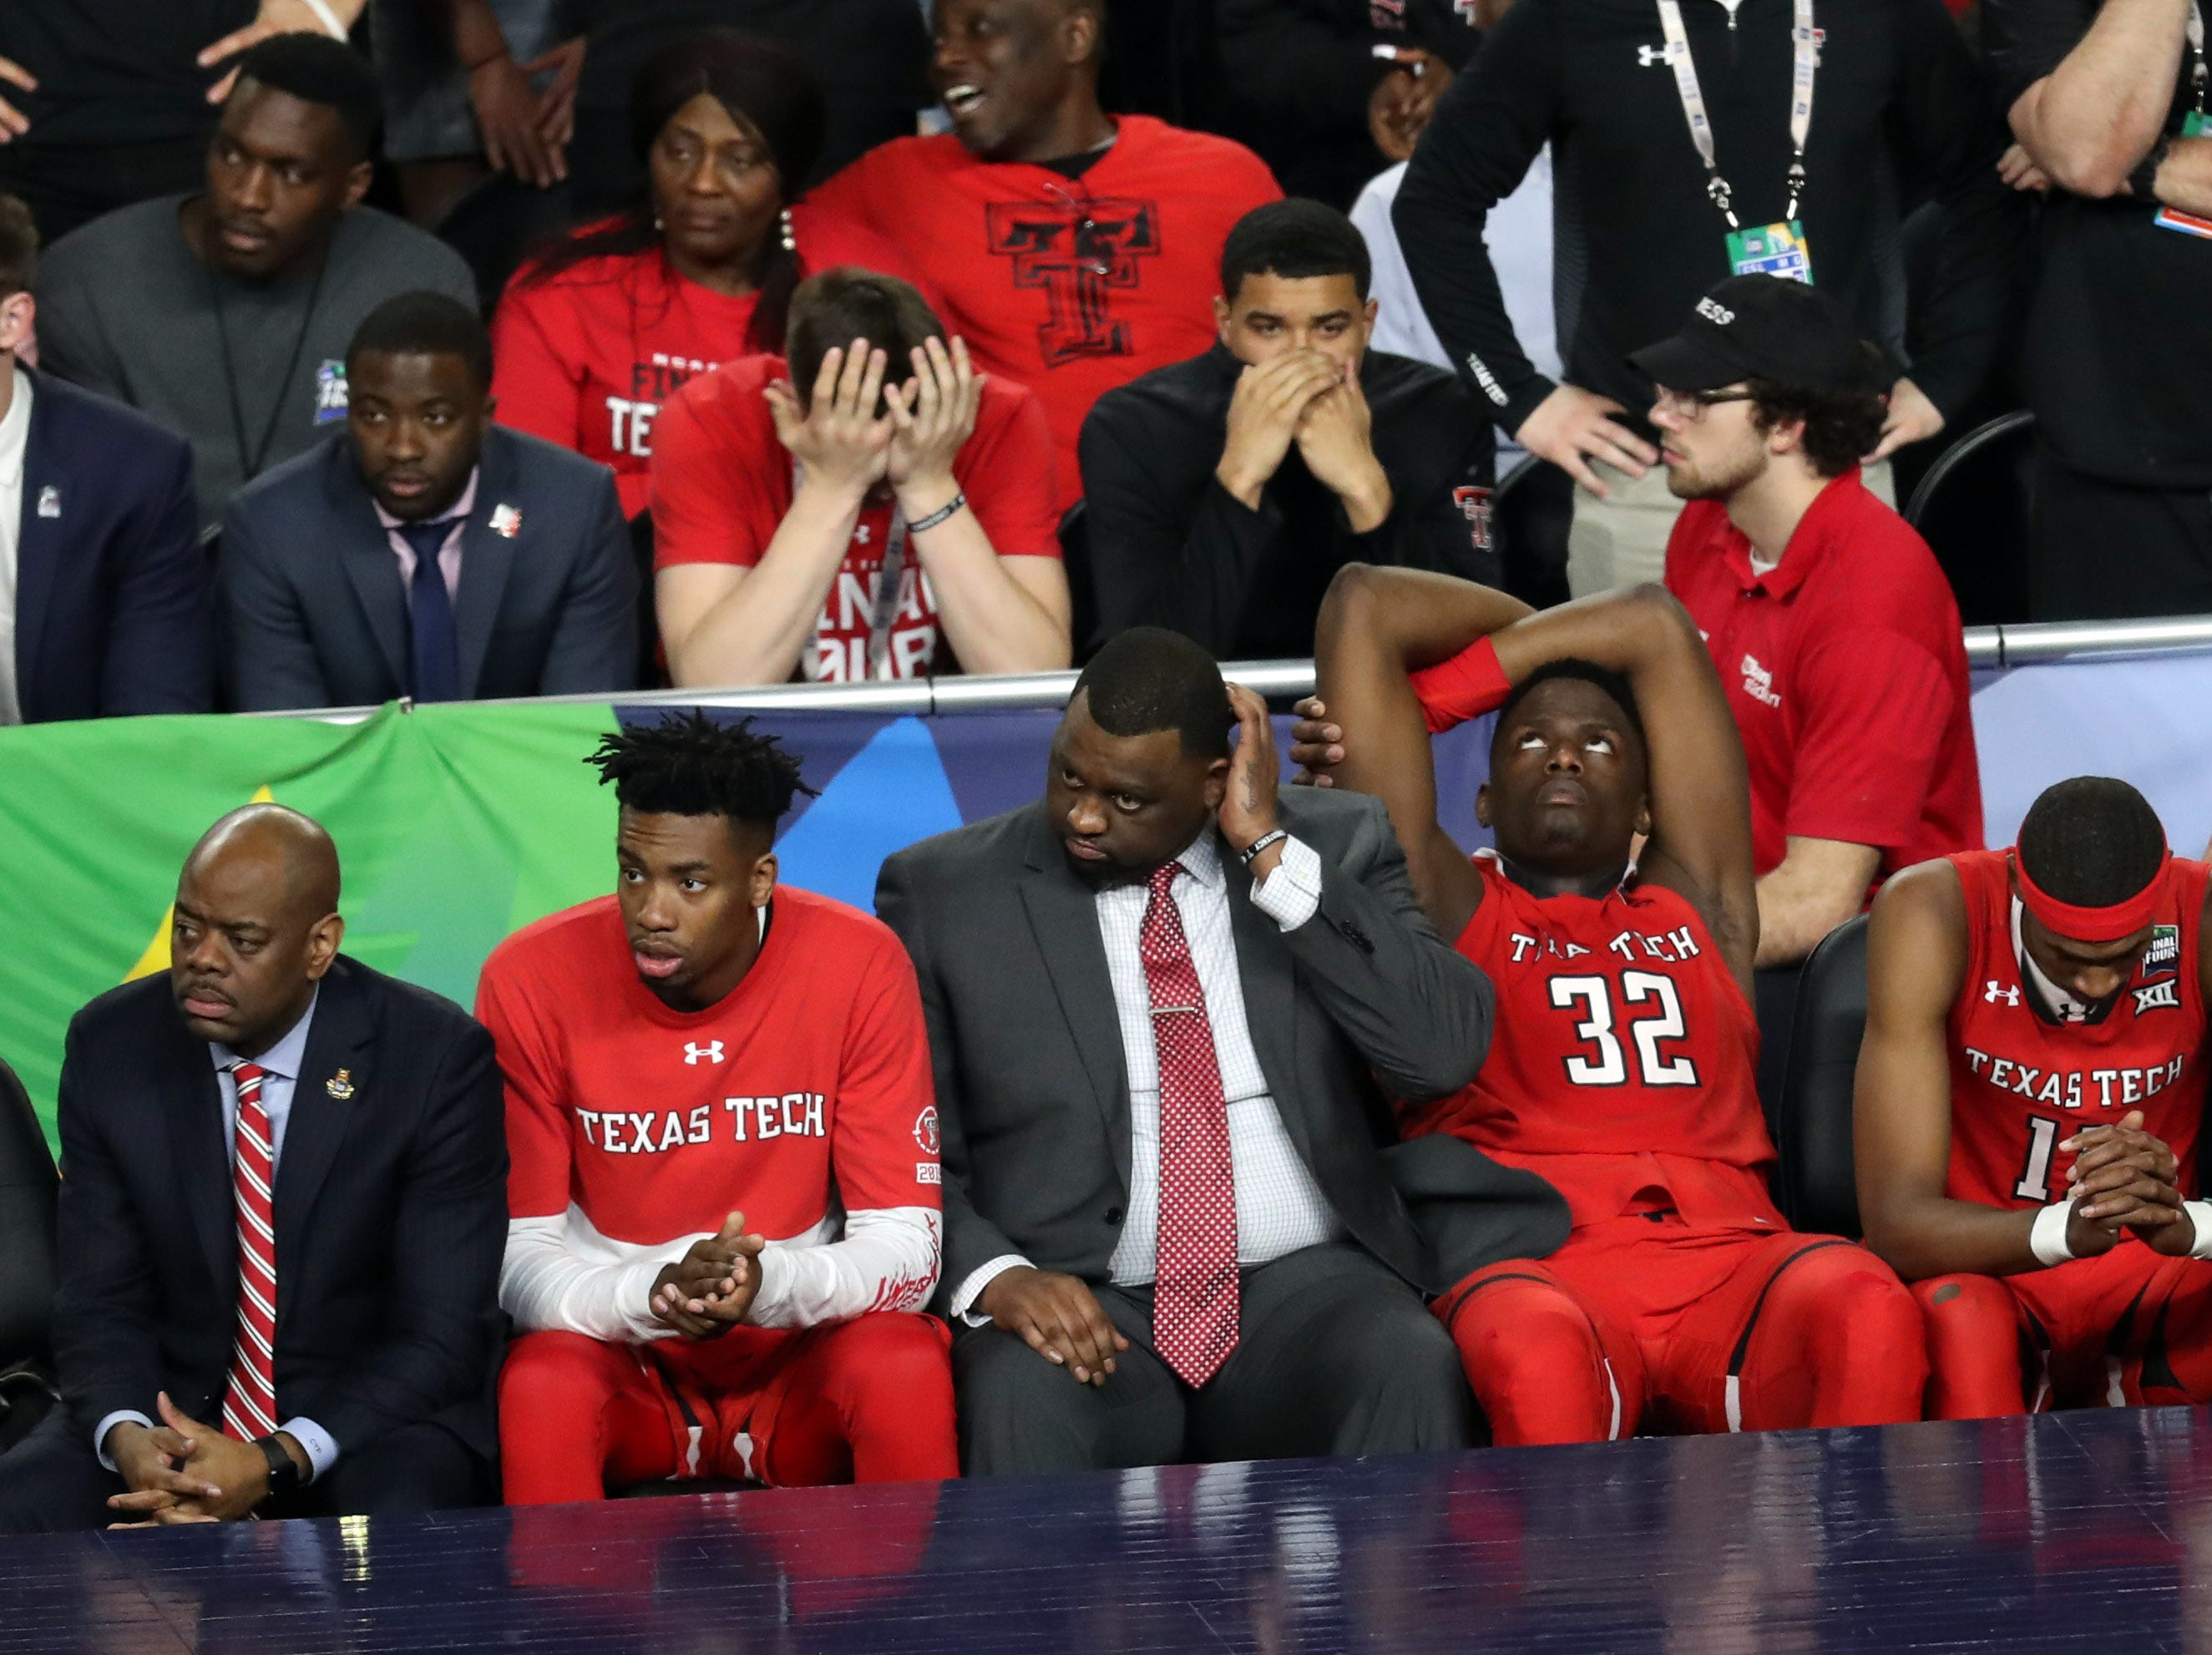 Apr 8, 2019; Minneapolis, MN, USA; The Texas Tech Red Raiders bench reacts during the second half against the Virginia Cavaliers in the championship game of the 2019 men's Final Four at US Bank Stadium. Mandatory Credit: Brace Hemmelgarn-USA TODAY Sports